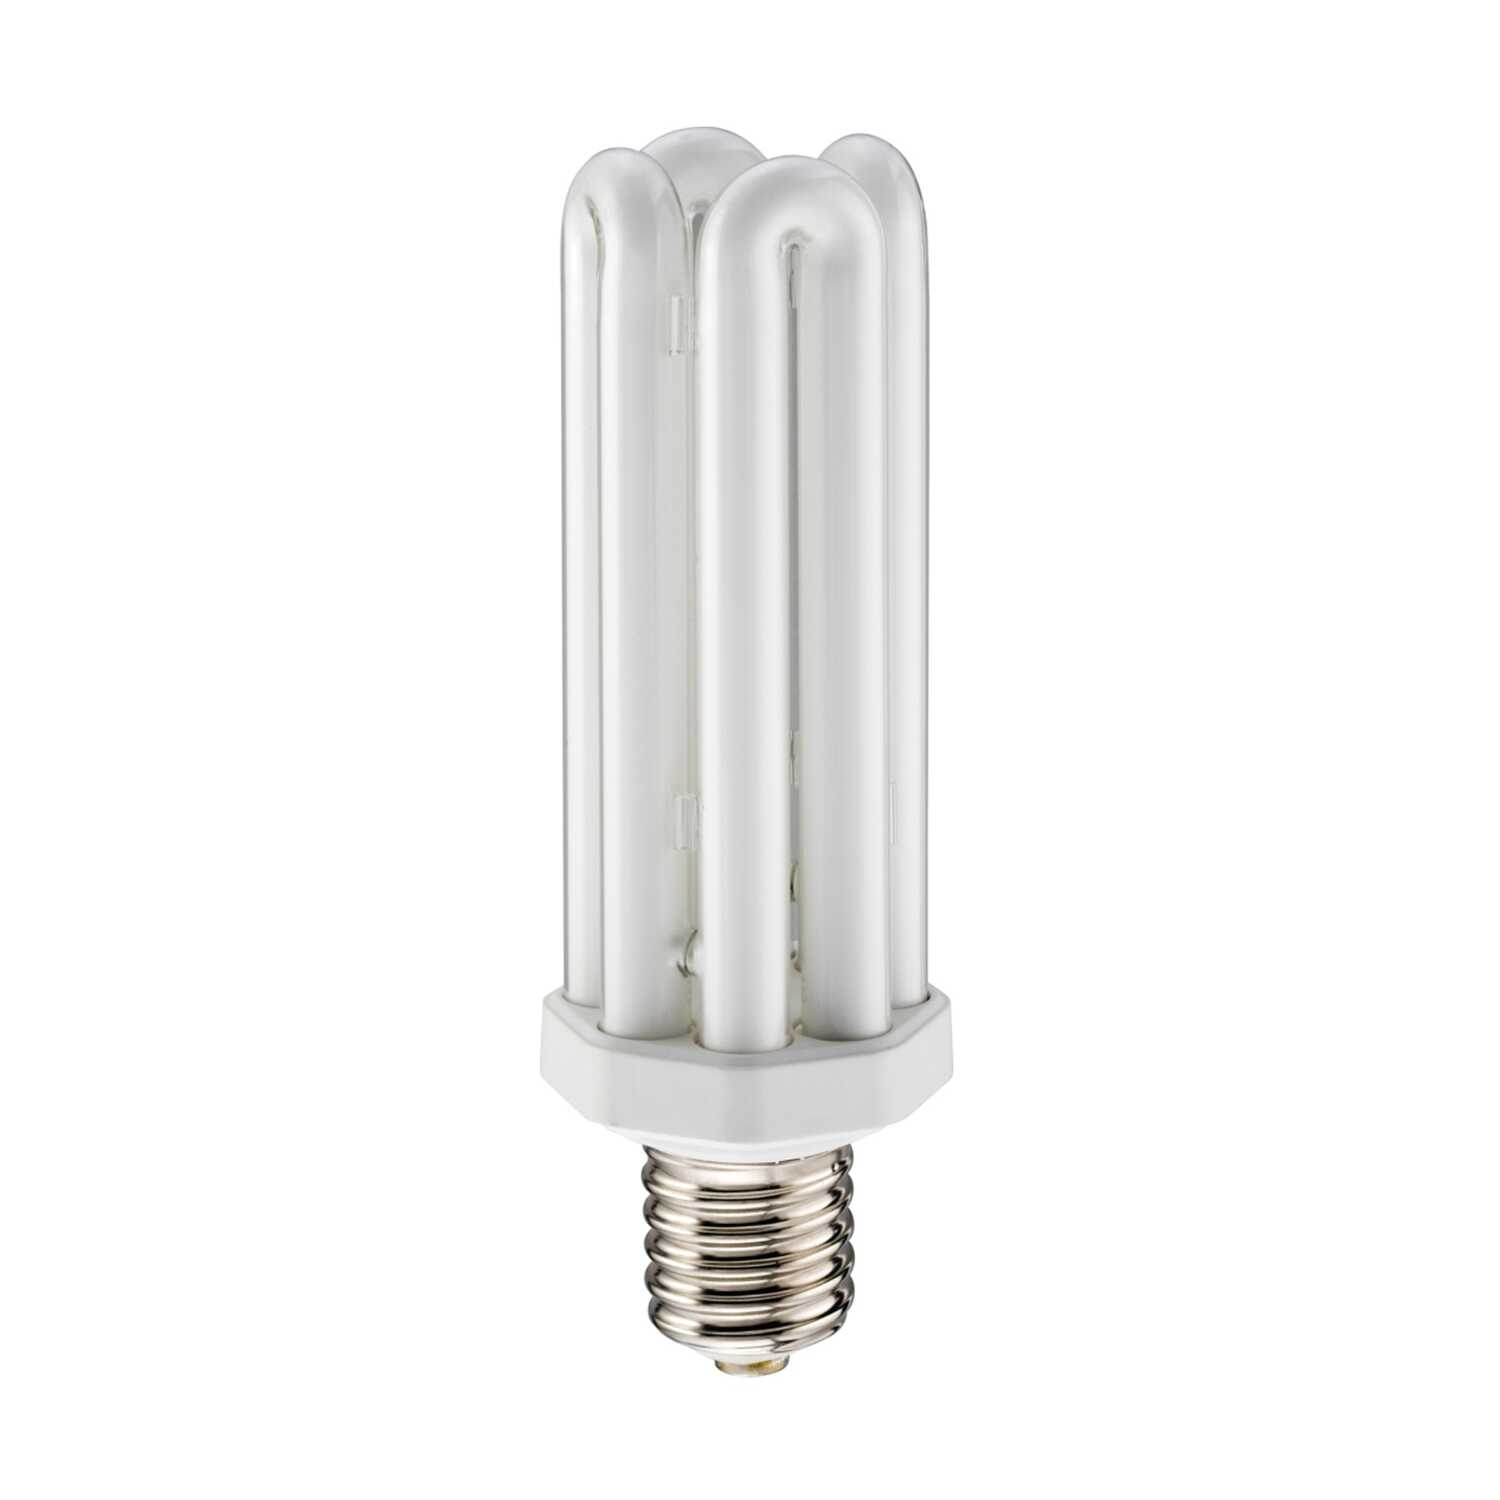 Lithonia Lighting 65 Watts Linear 6 In. L Cool White CFL